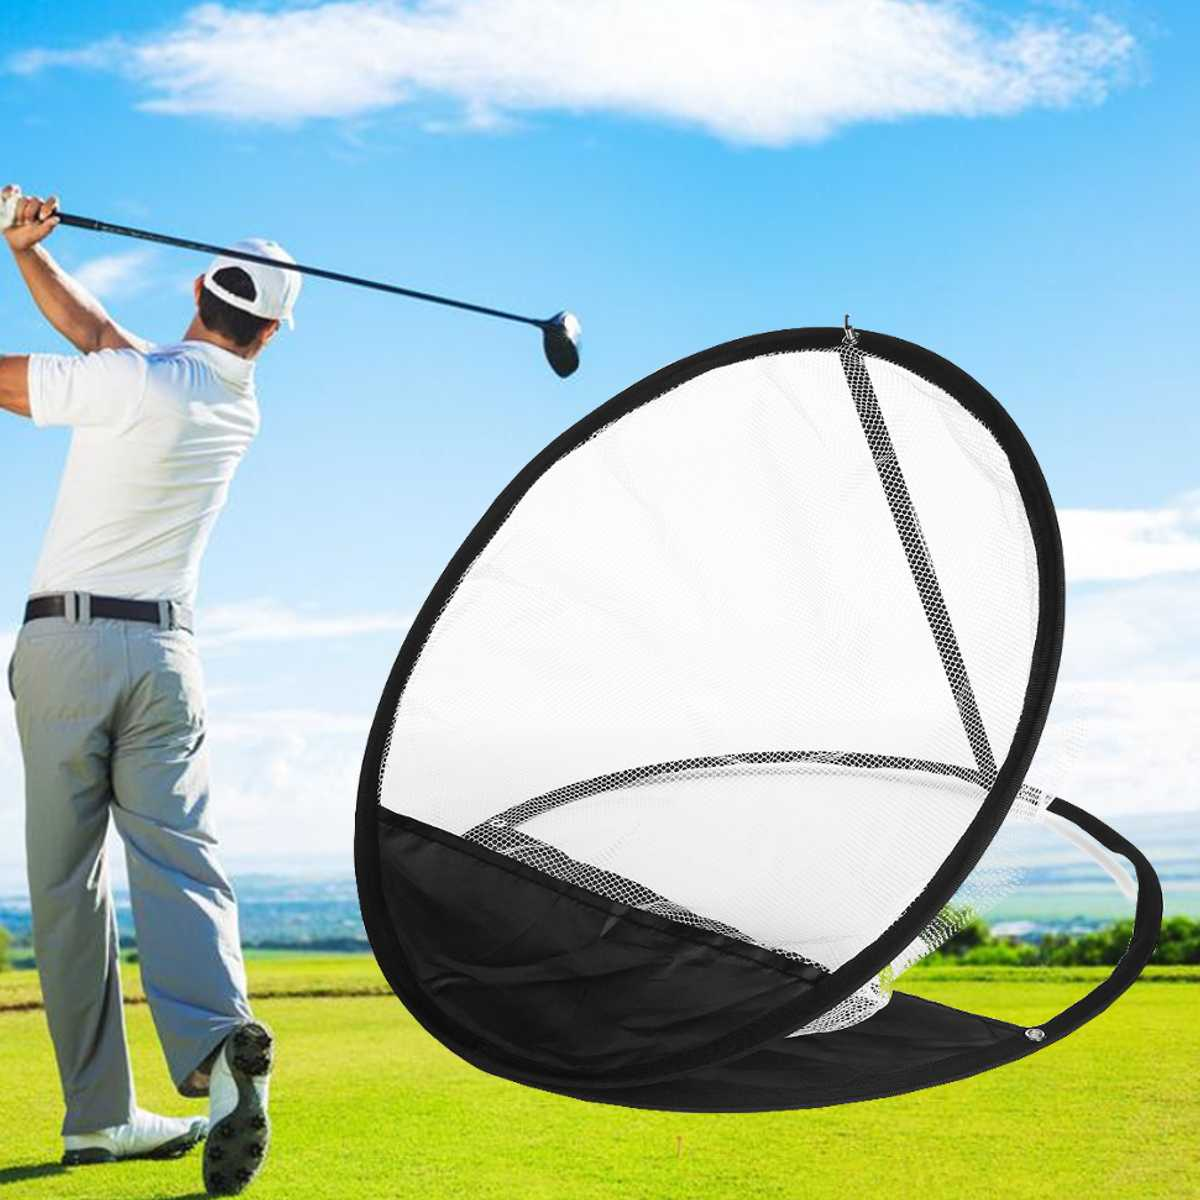 50cm Golf Cage Swing Trainer Pad Set Indoor Golf Ball Practice Net Golf Training New Without The Mat